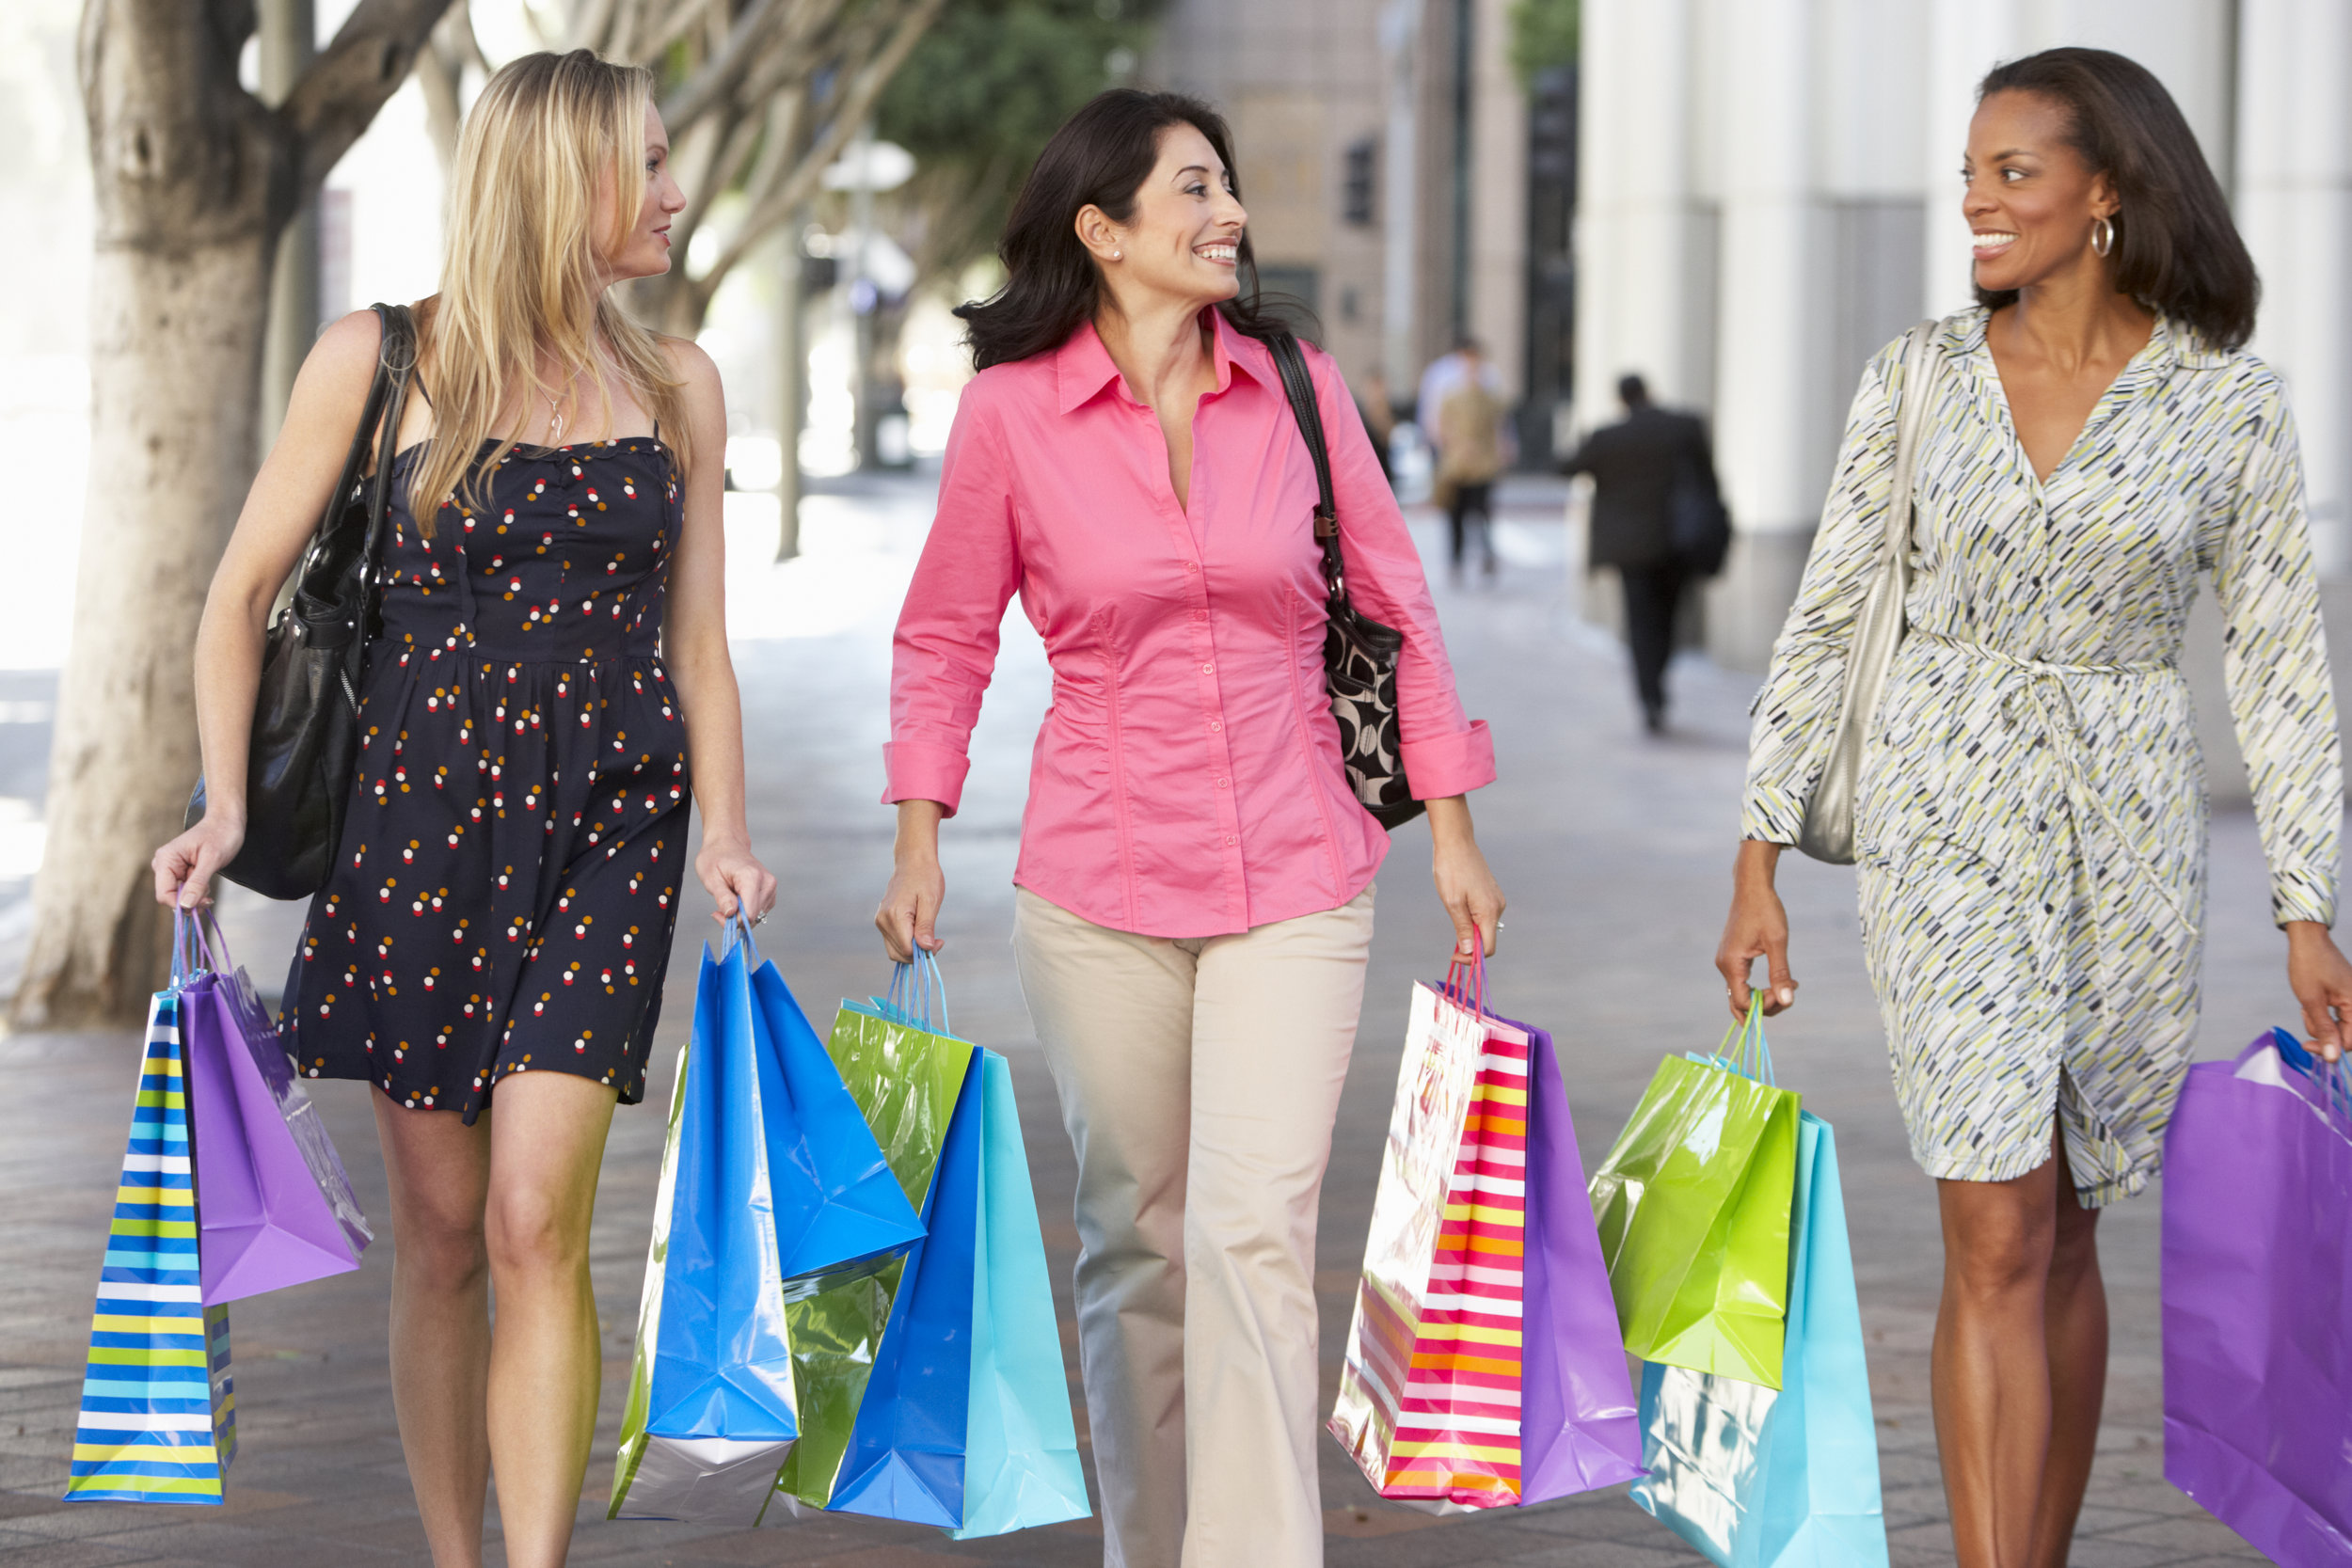 group-of-women-carrying-shopping-bags-on-city-PNPSDGZ.jpg